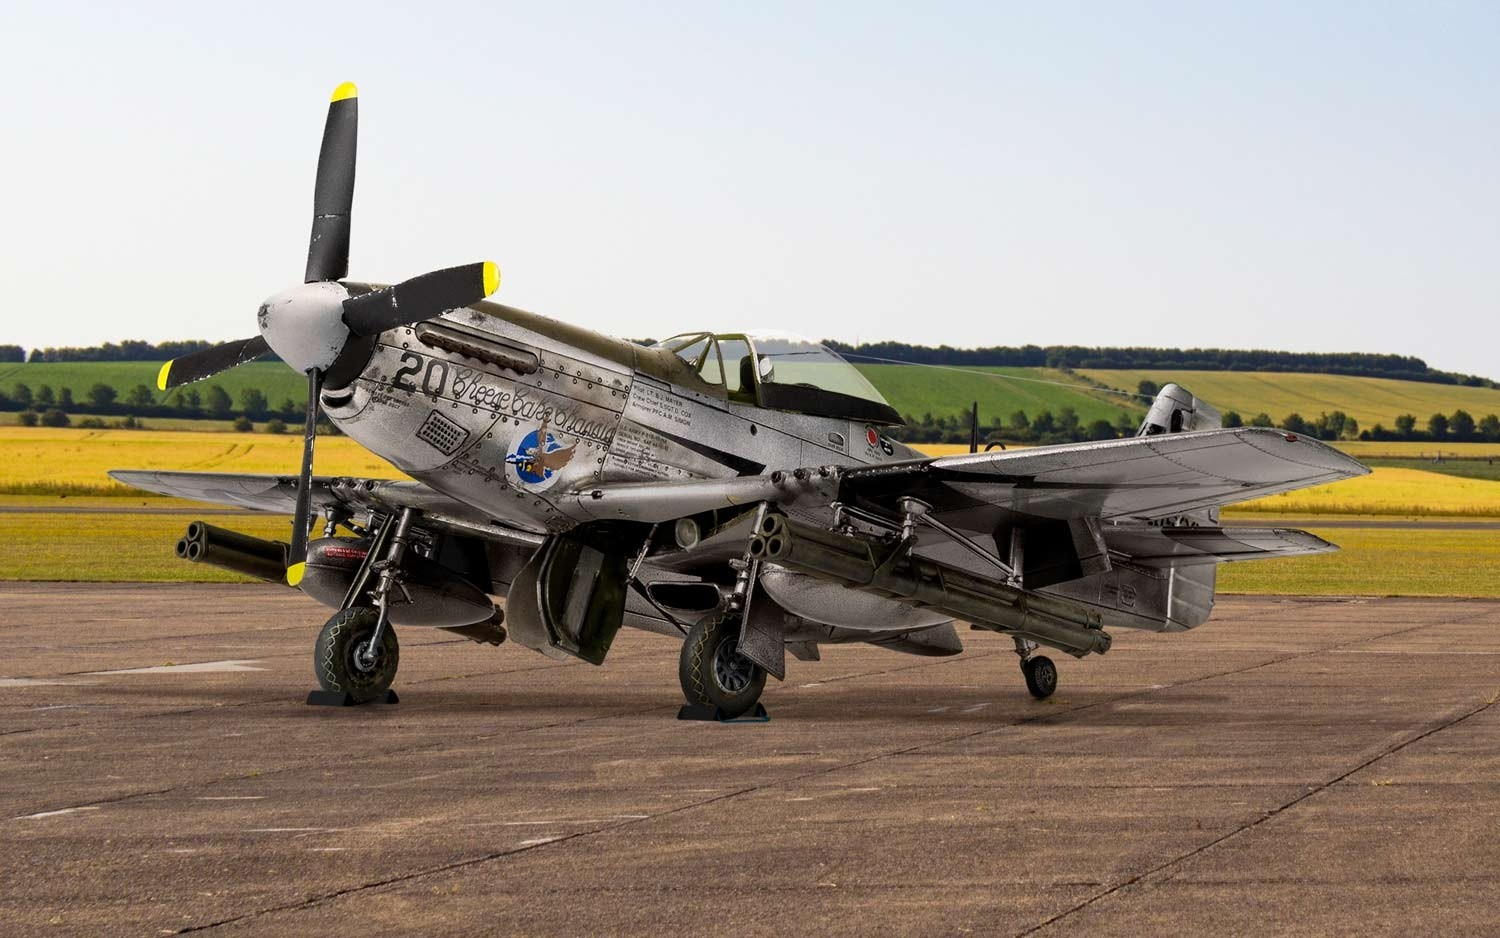 a05131_north-american-p-51d-mustang_product-scenic_1.jpg